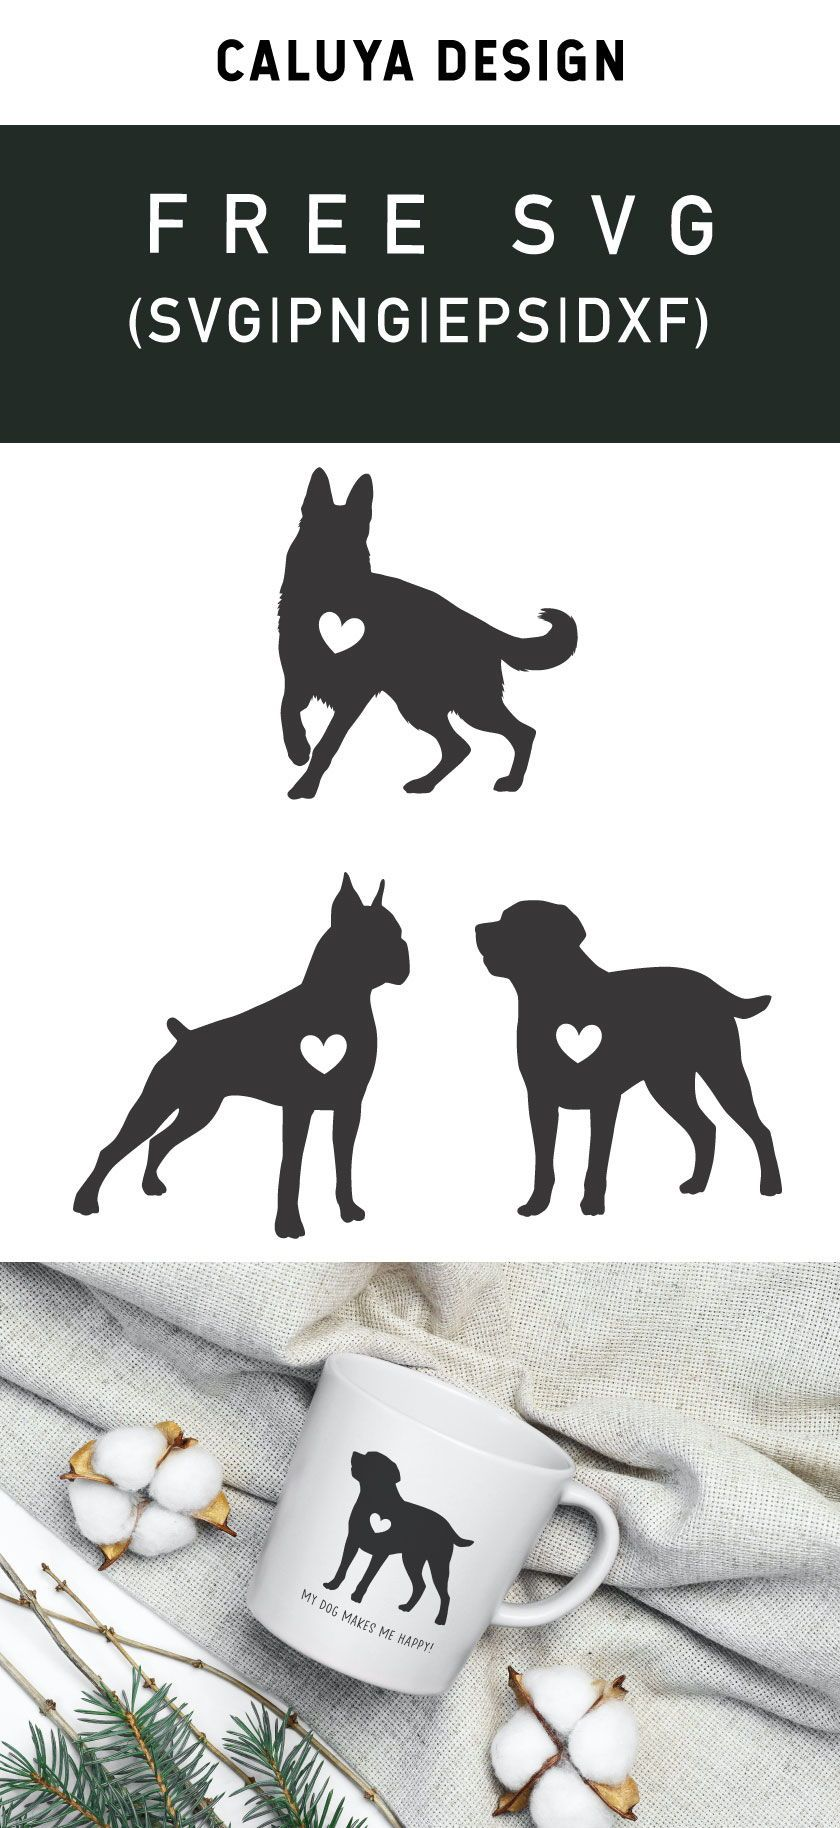 Free Big Dog Silhouette With Heart Svg Png Eps Dxf In 2020 Dog Silhouette Svg Free Printable Clip Art